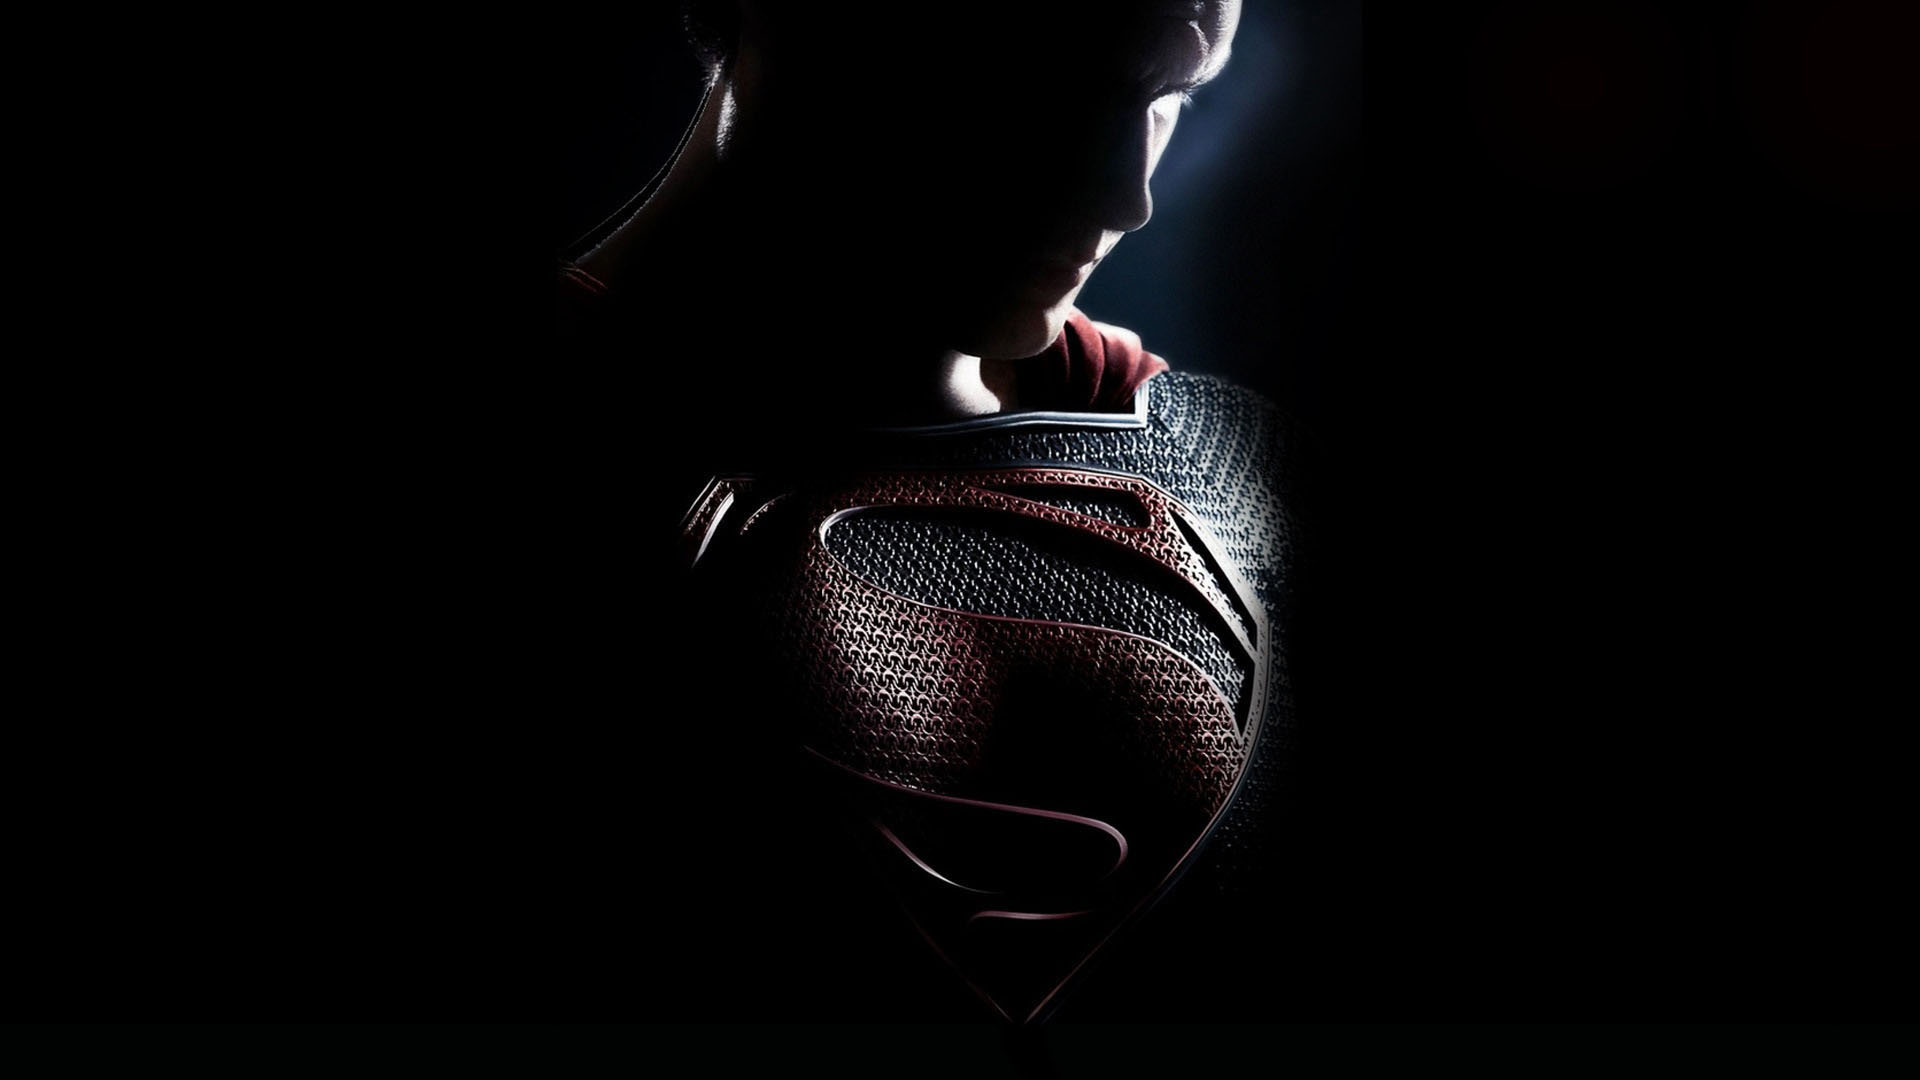 fonds d'écran superman man de steel : tous les wallpapers superman